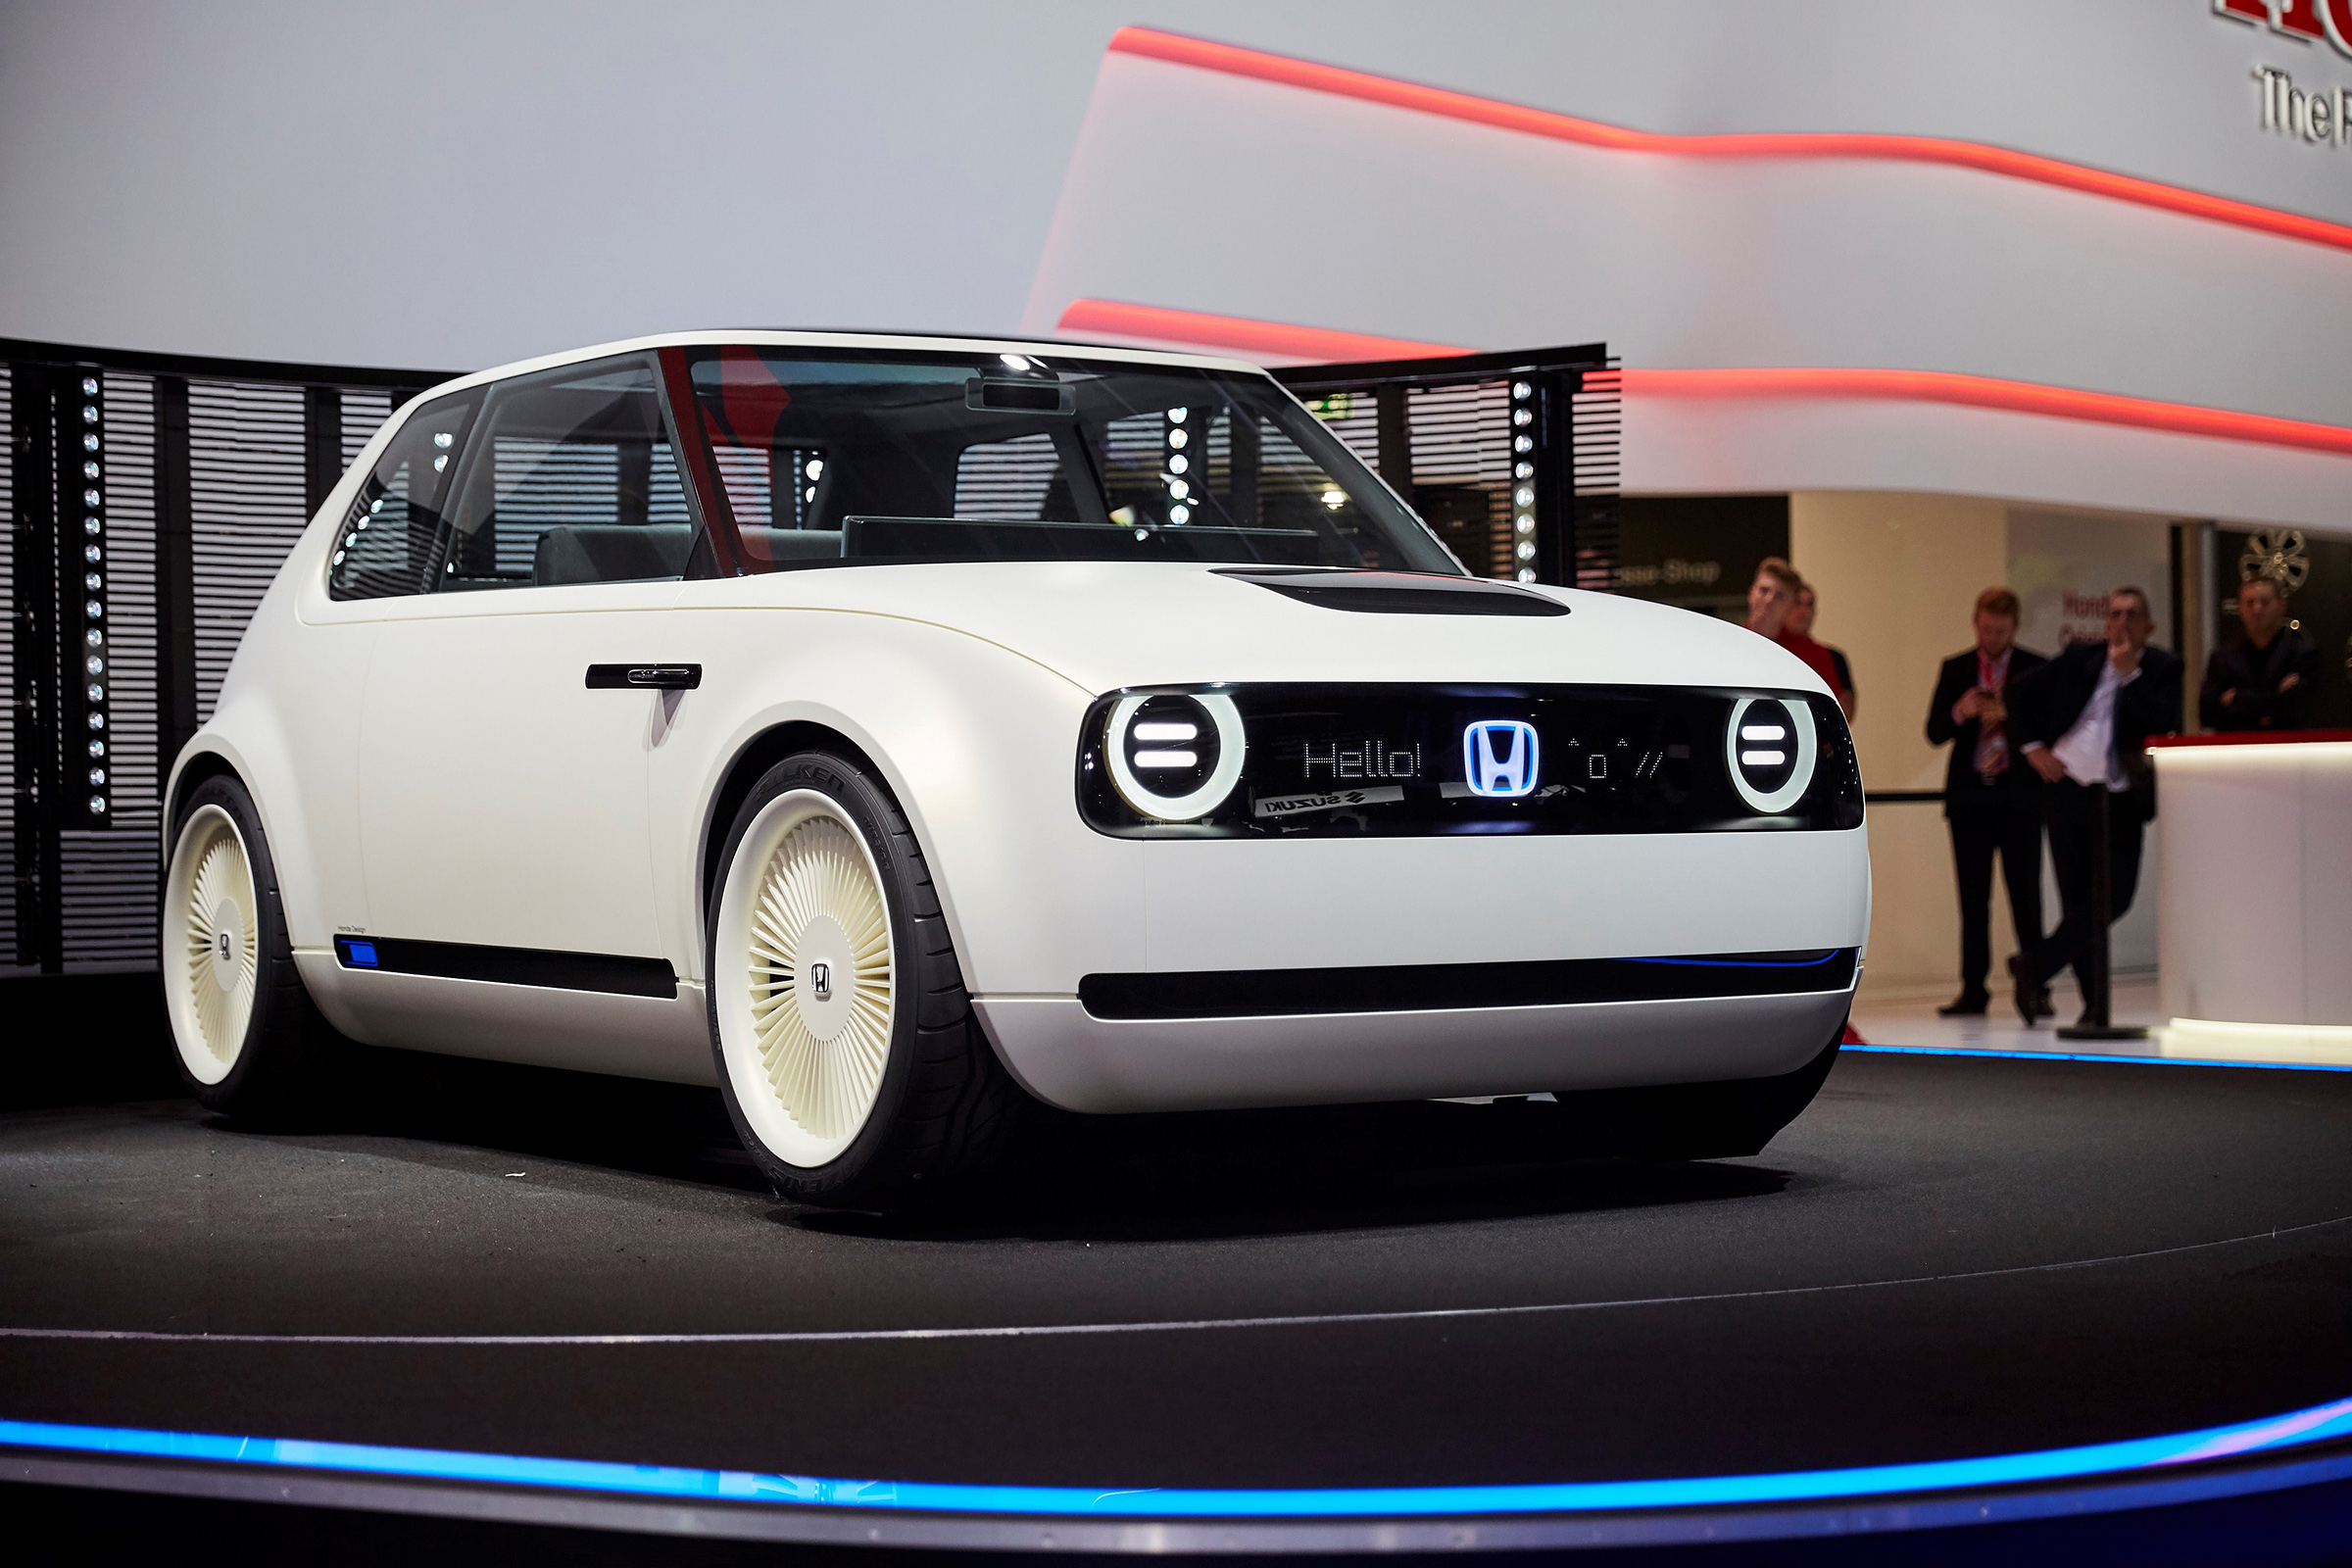 In a surprise move honda has unveiled a new electric vehicle concept at the frankfurt motor show s press days which just kicked off this morning